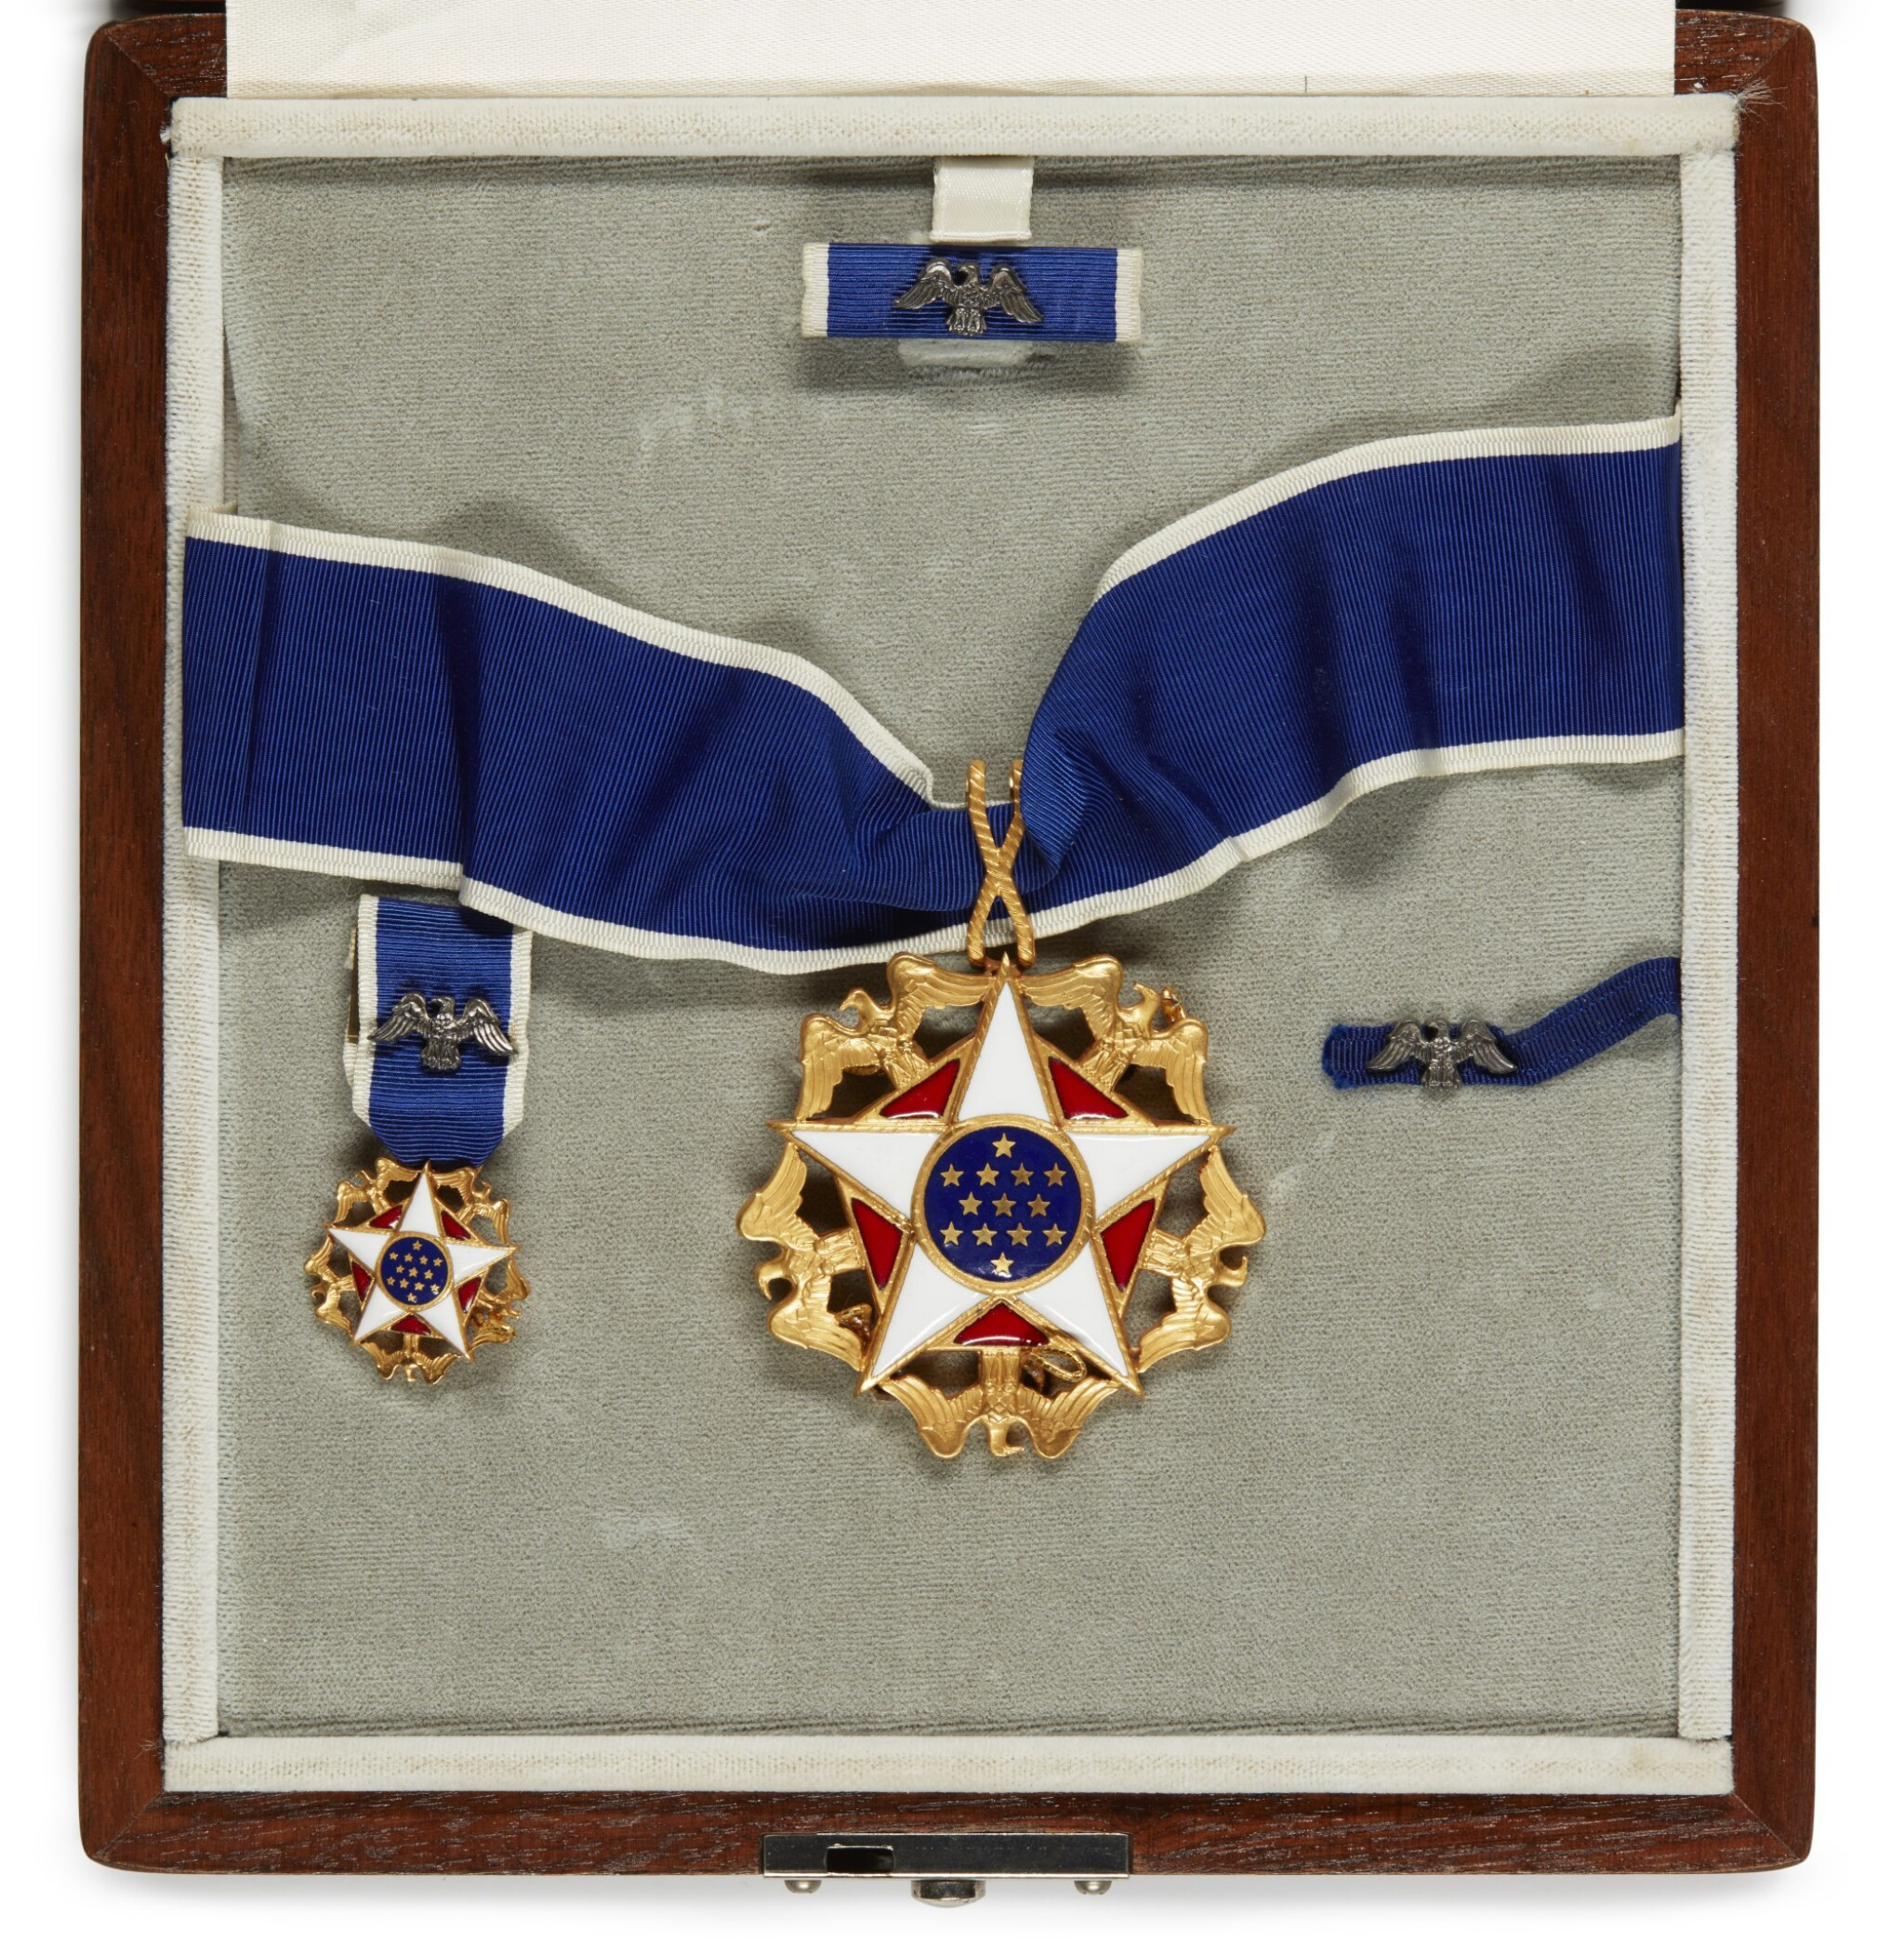 View full screen - View 1 of Lot 20. THE PRESIDENTIAL MEDAL OF FREEDOM, AWARDED BY PRESIDENT GEORGE H.W. BUSH, 1991.